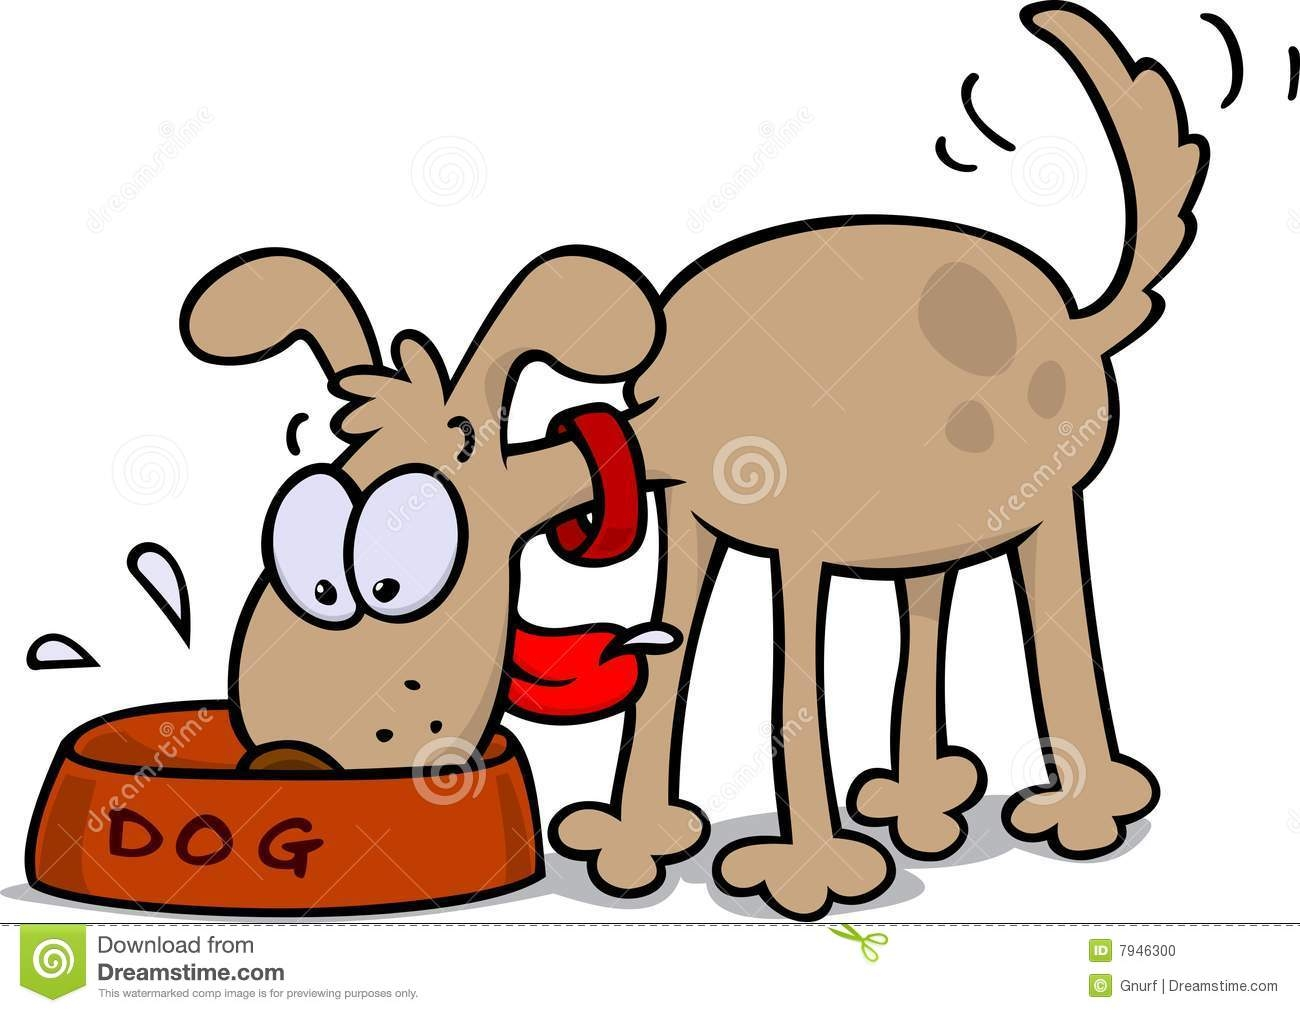 Eating Dog Clipart.